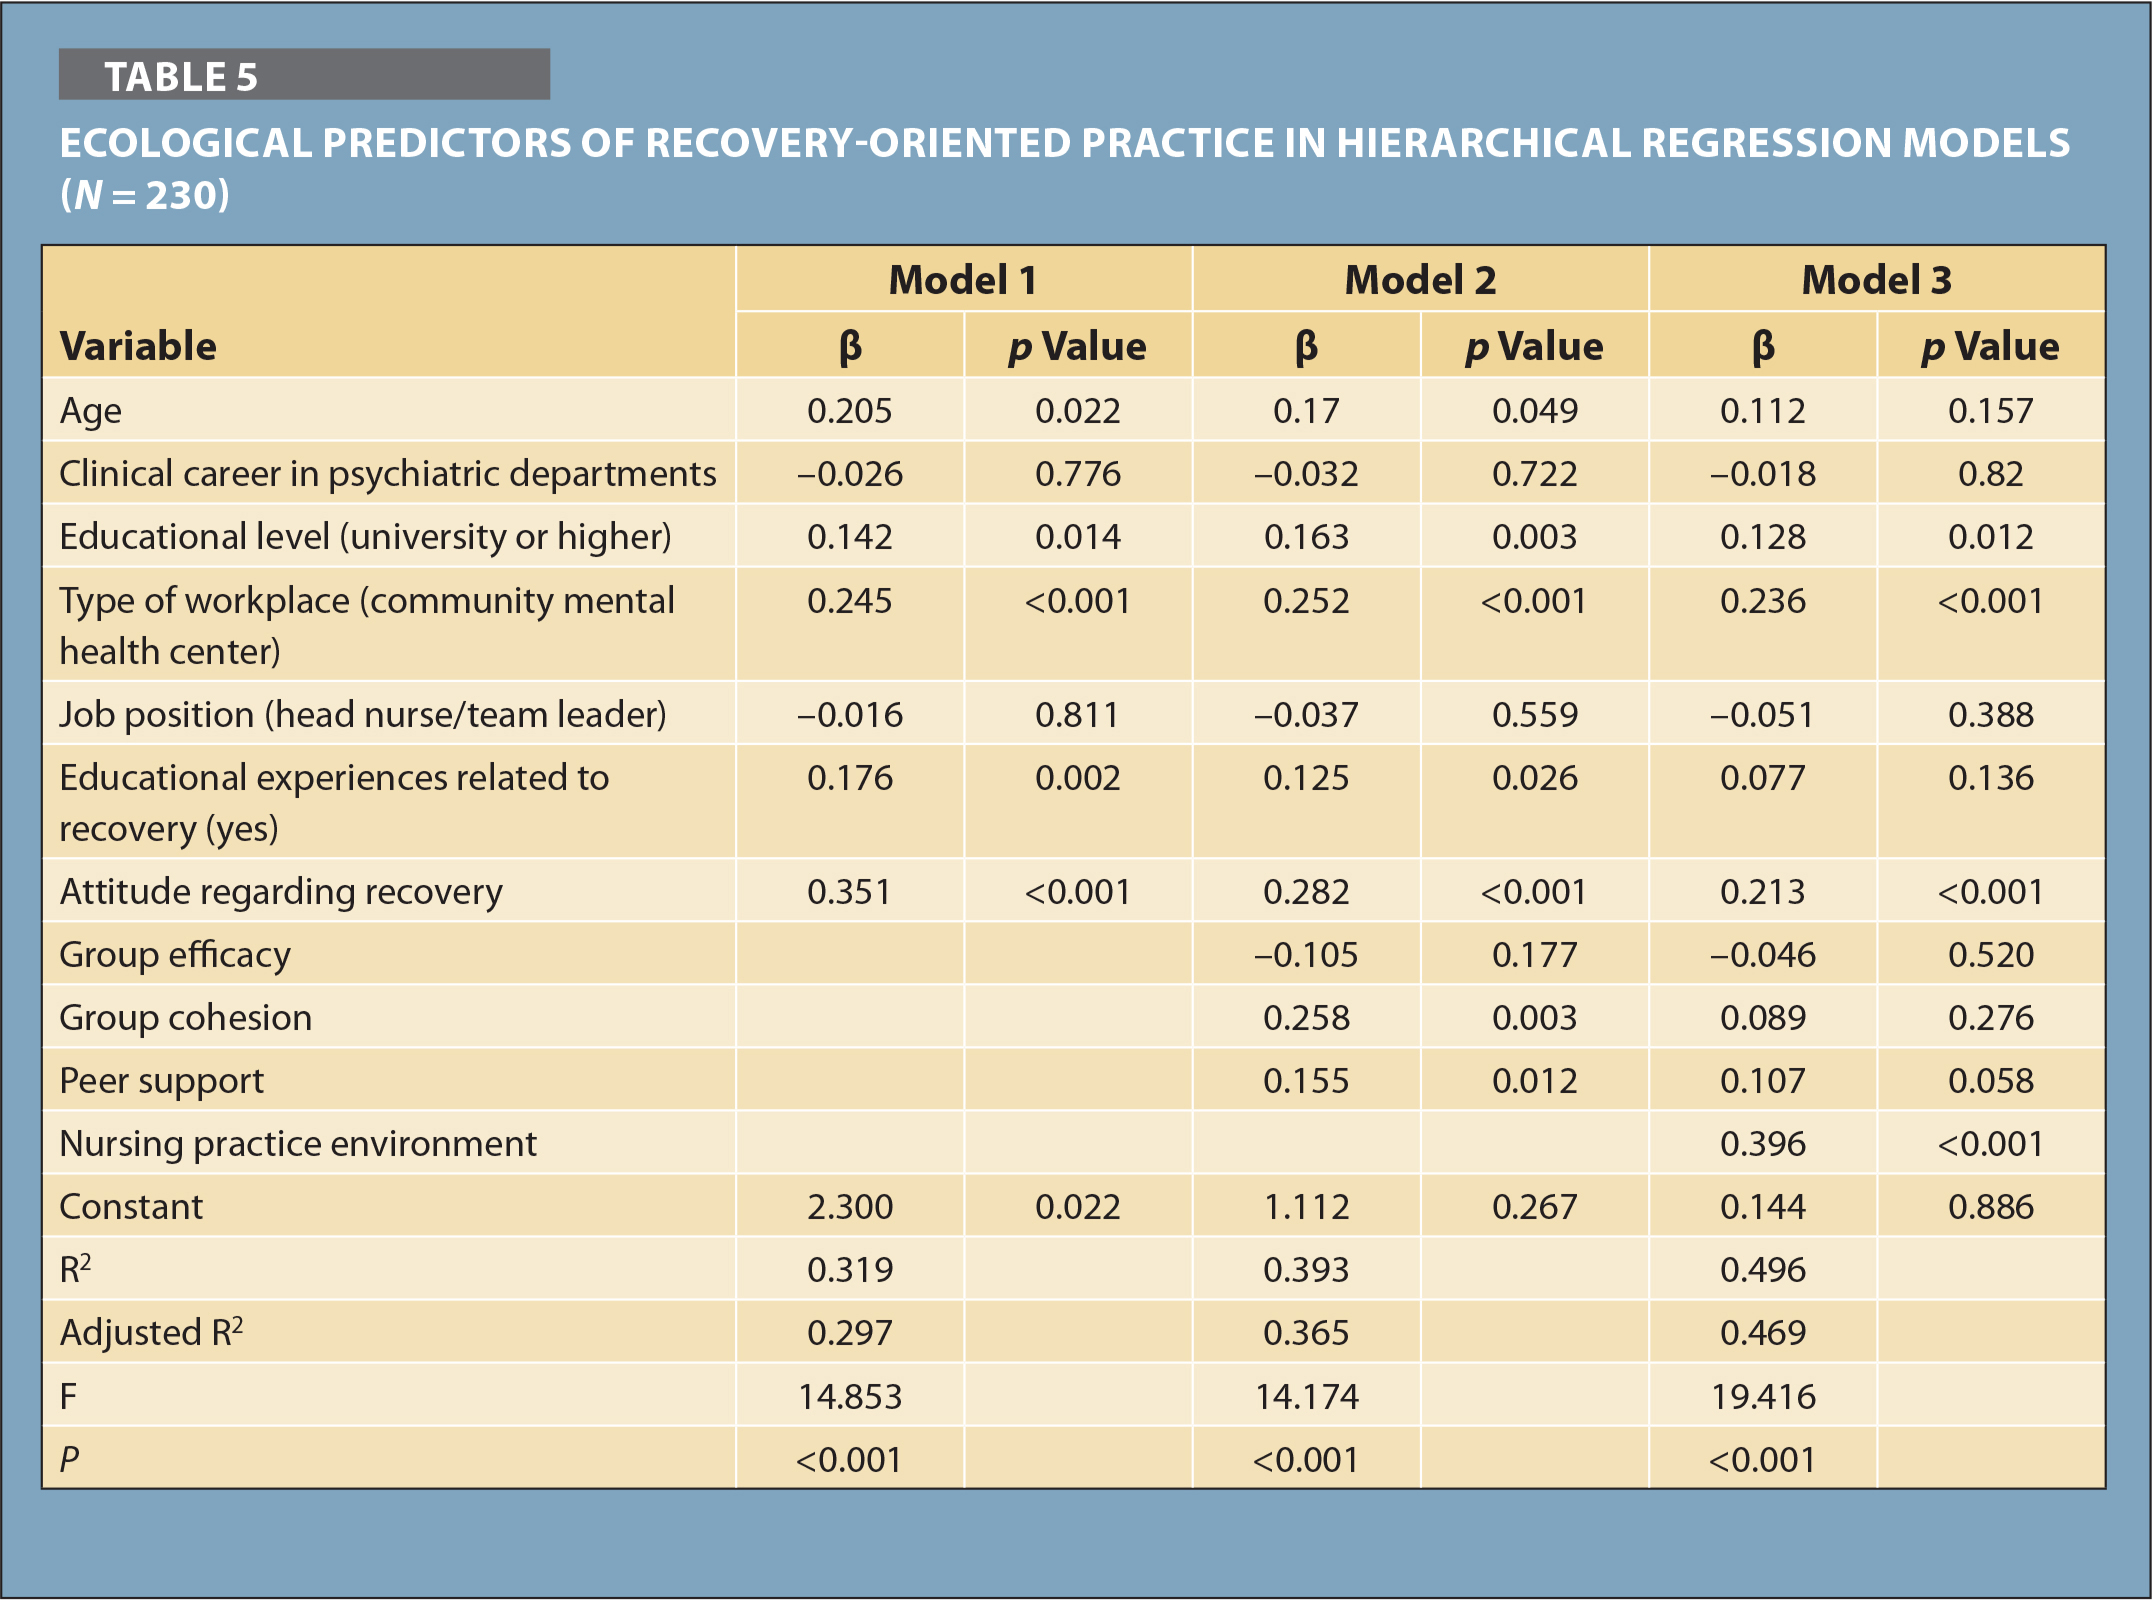 Ecological Predictors of Recovery-Oriented Practice in Hierarchical Regression Models (N = 230)